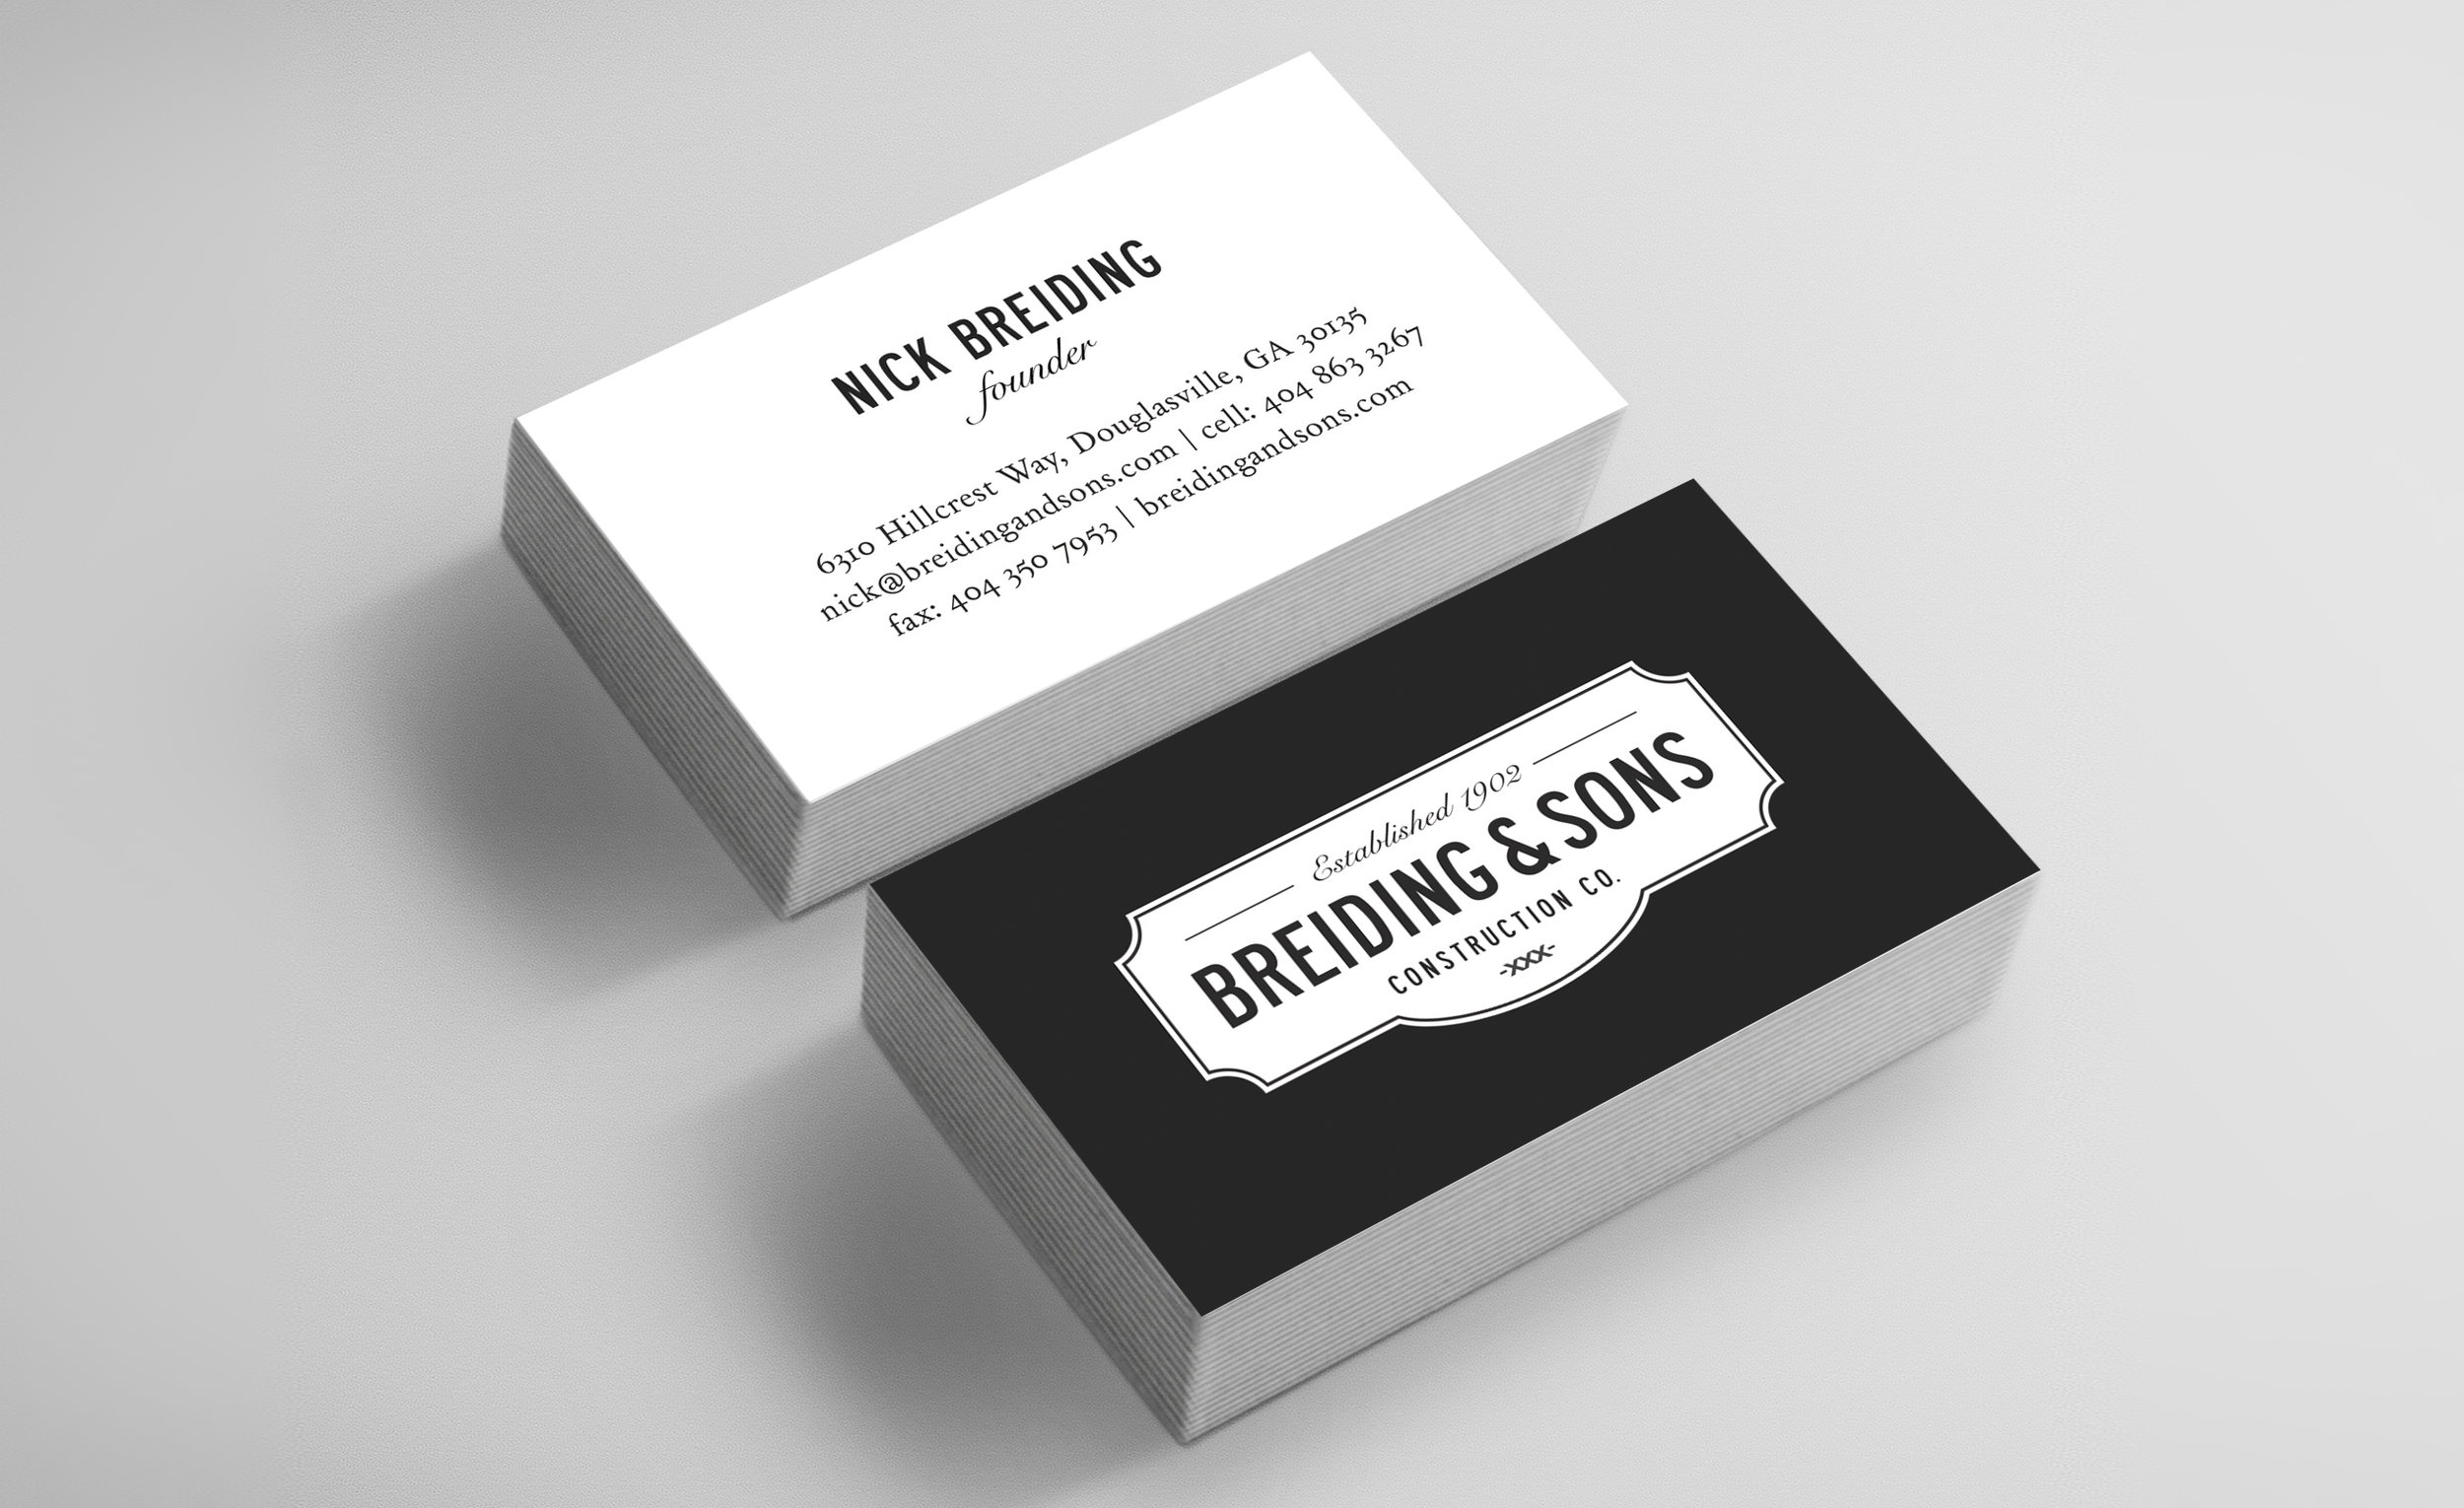 Breiding & Sons - Brand Identity, Website